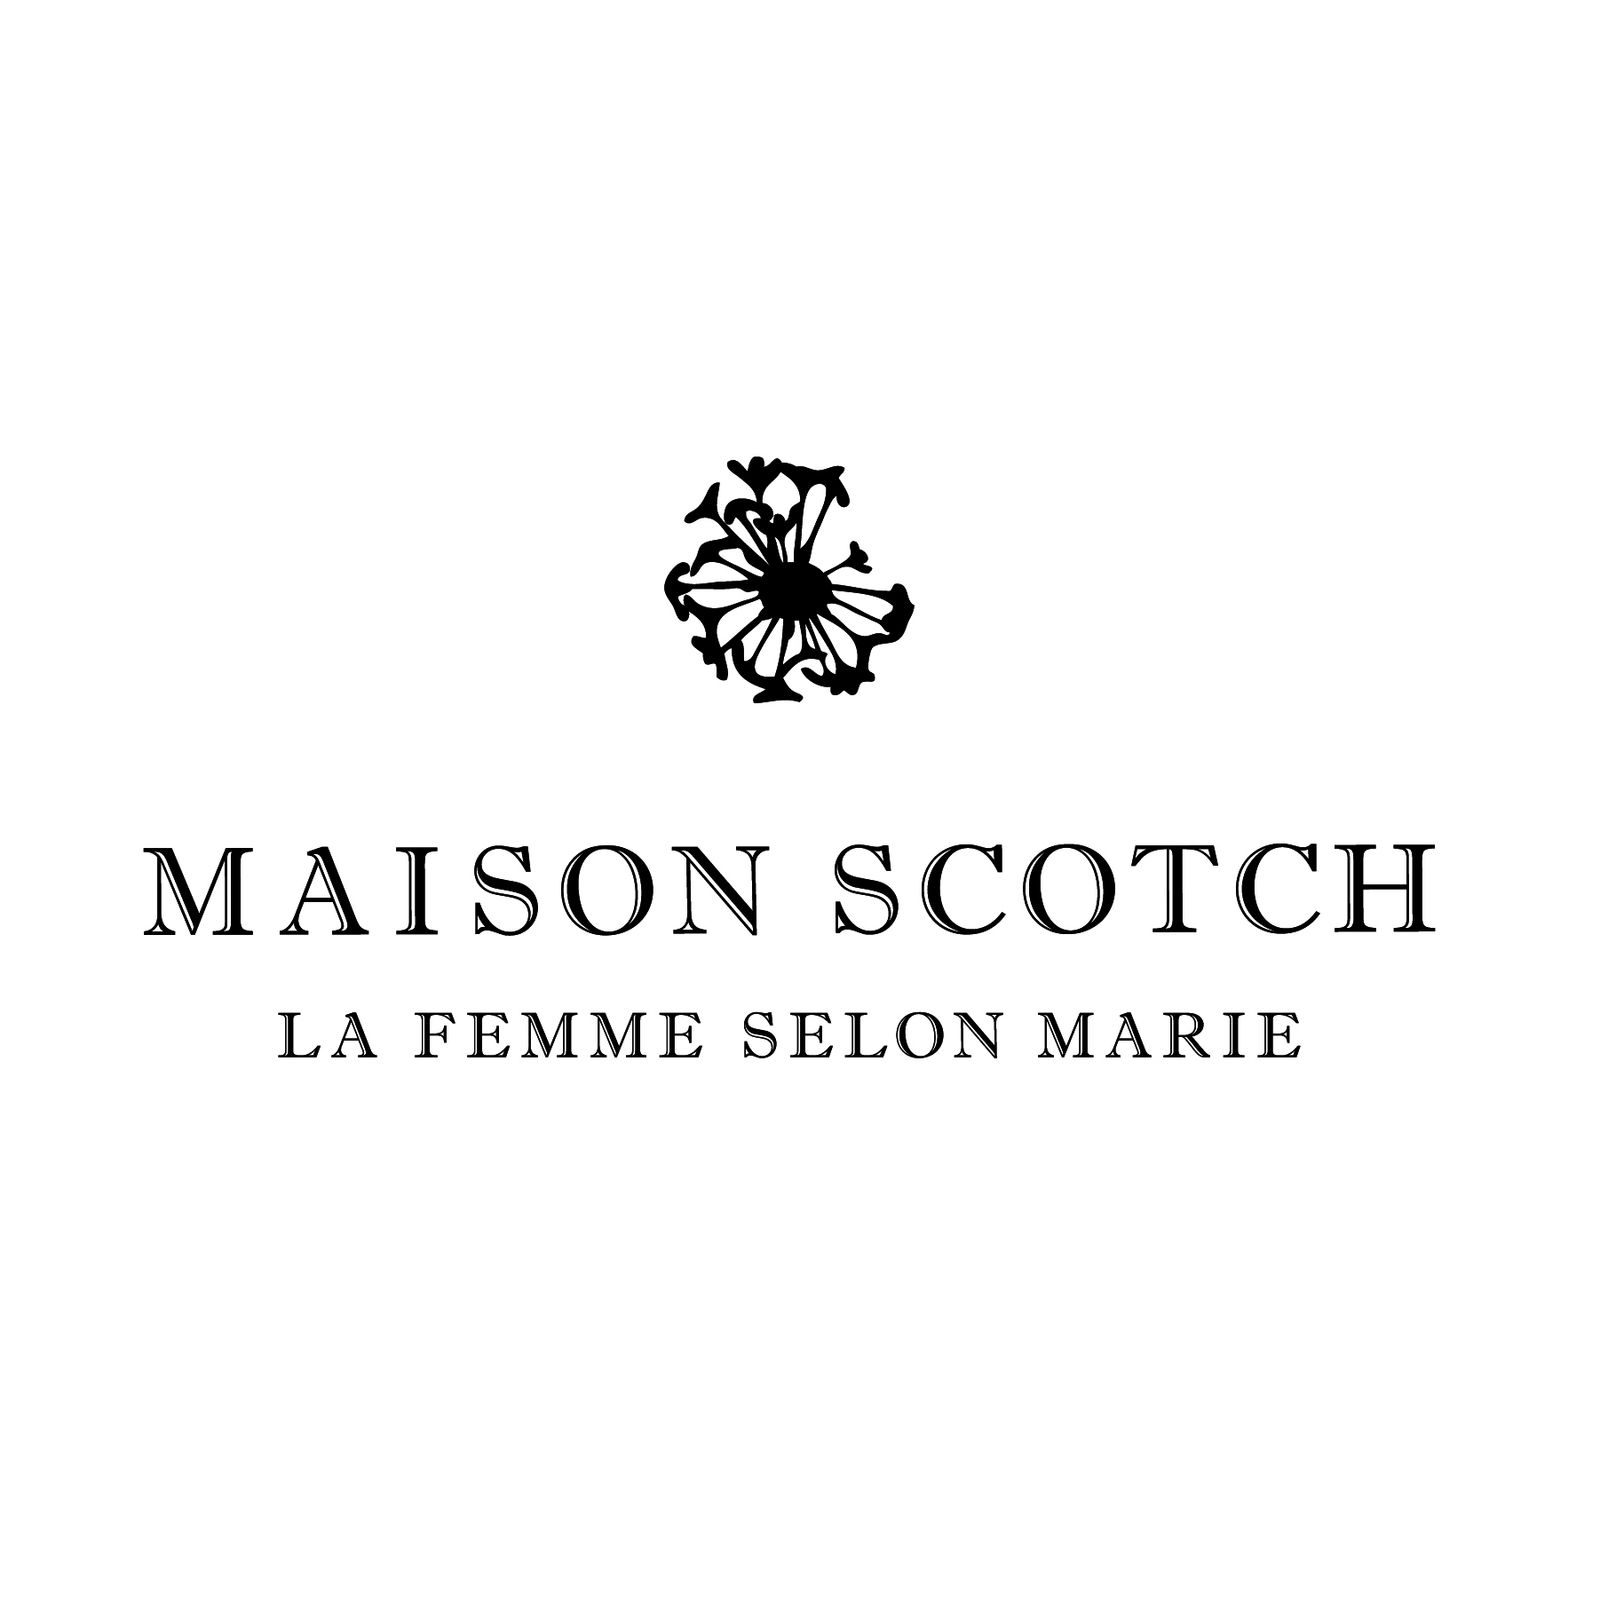 MAISON SCOTCH (Image 1)